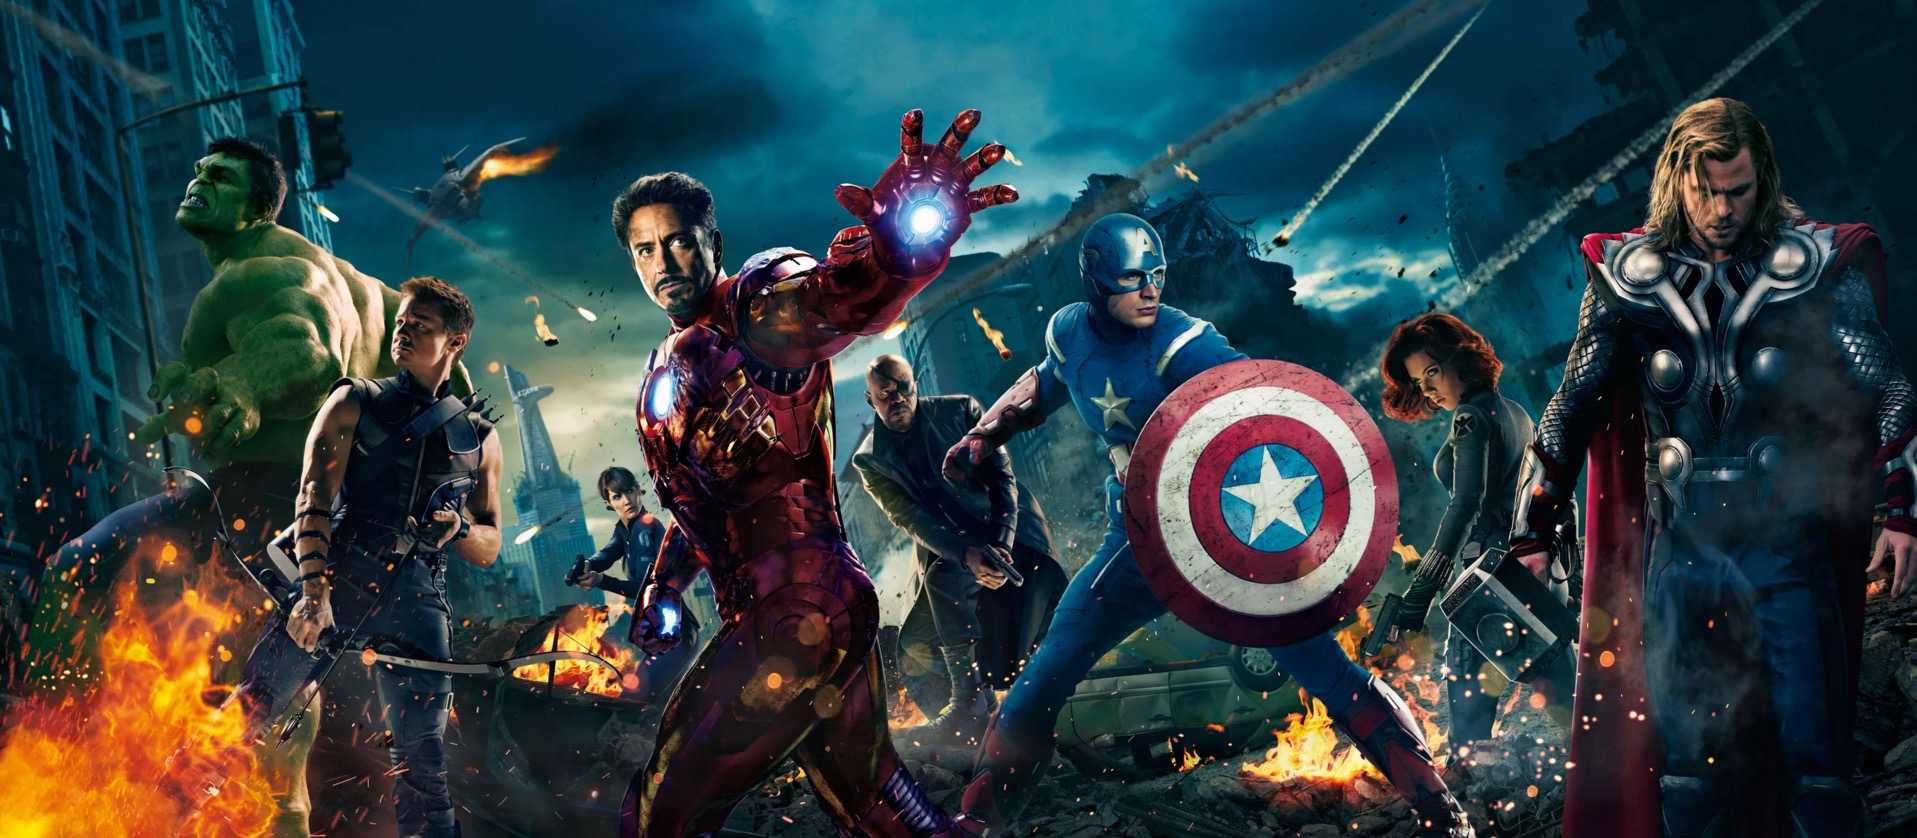 an analysis of the conflict and compromise of masculinities in superhero films First announced in october 2014 as part of the then-upcoming 'phase three' slate of superhero movies, captain marvel has become one of marvel studios' most anticipated films.